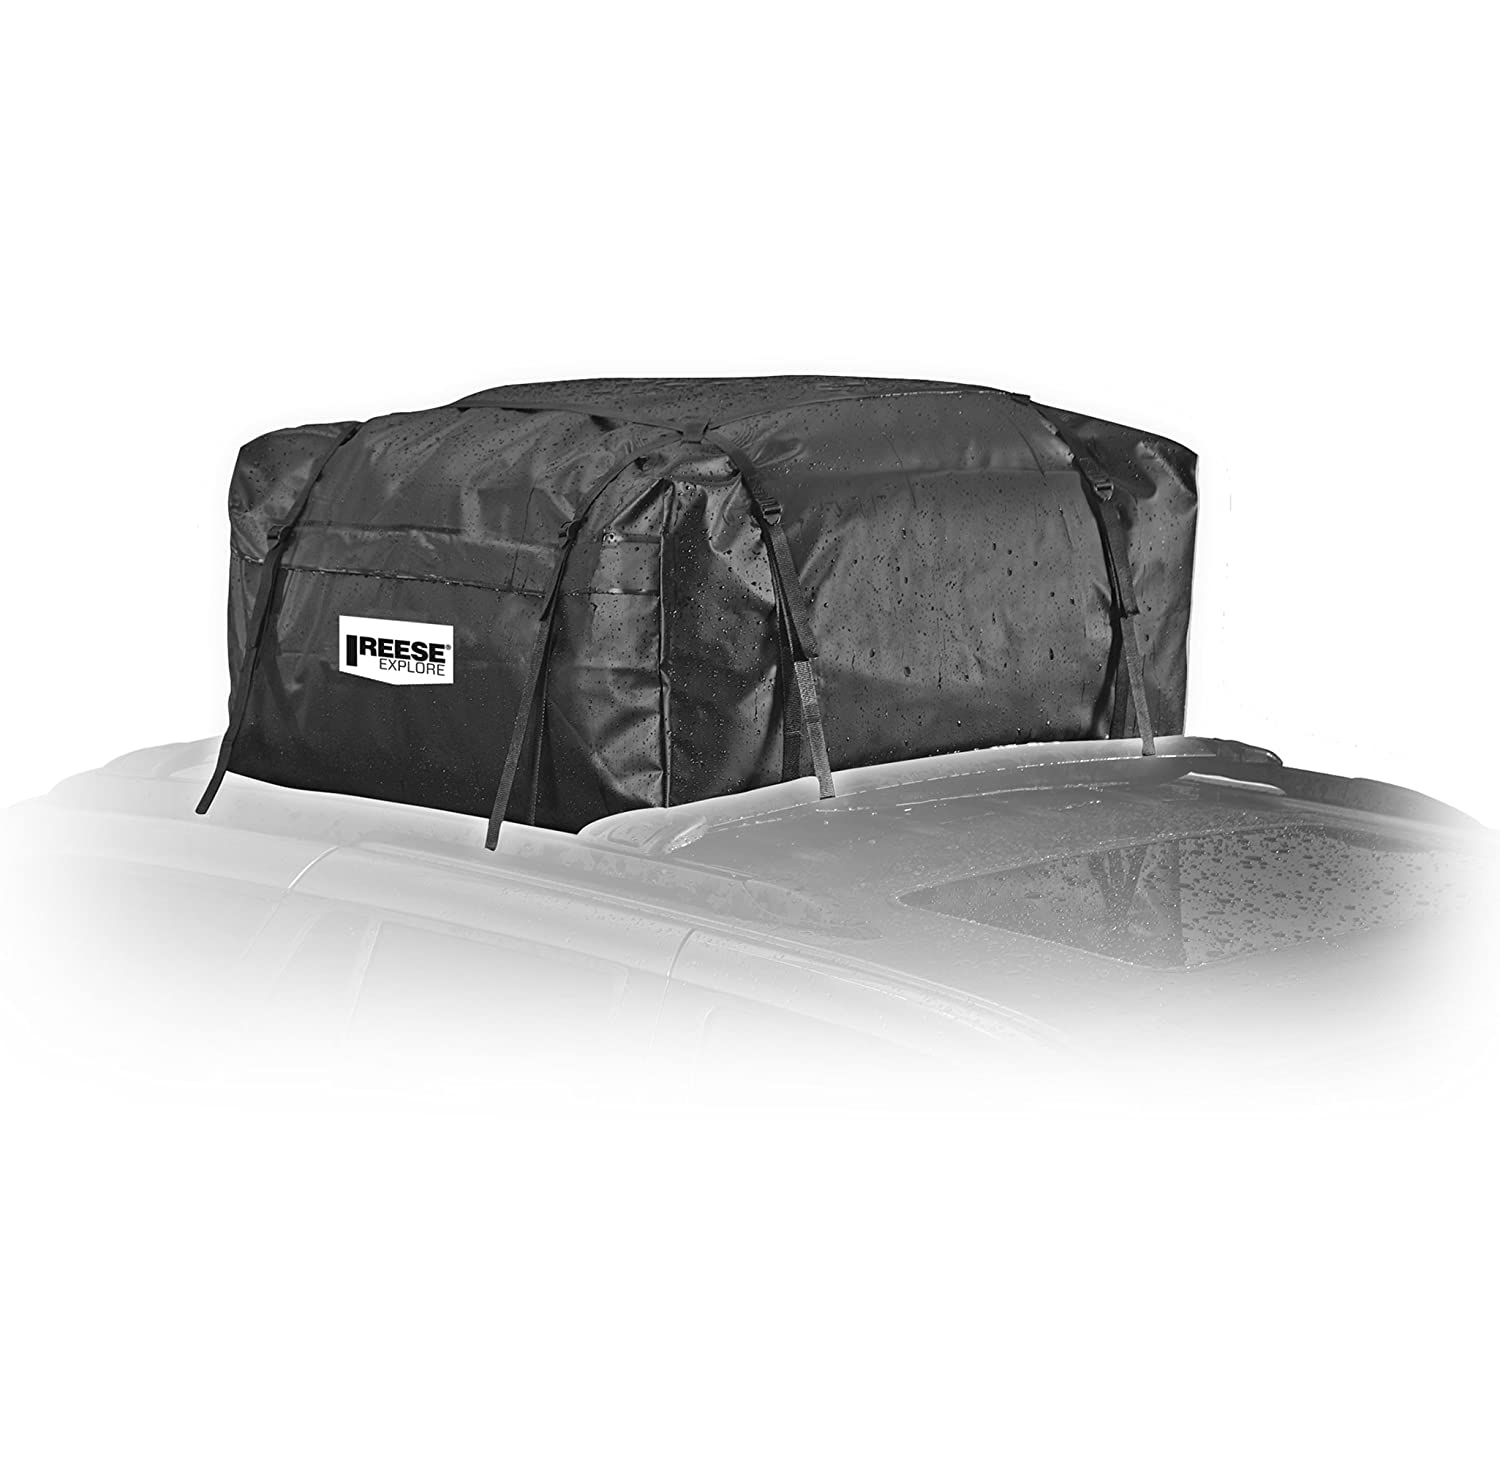 ft Reese Explore 1041100 15 cu Rainproof Car Top Carrier